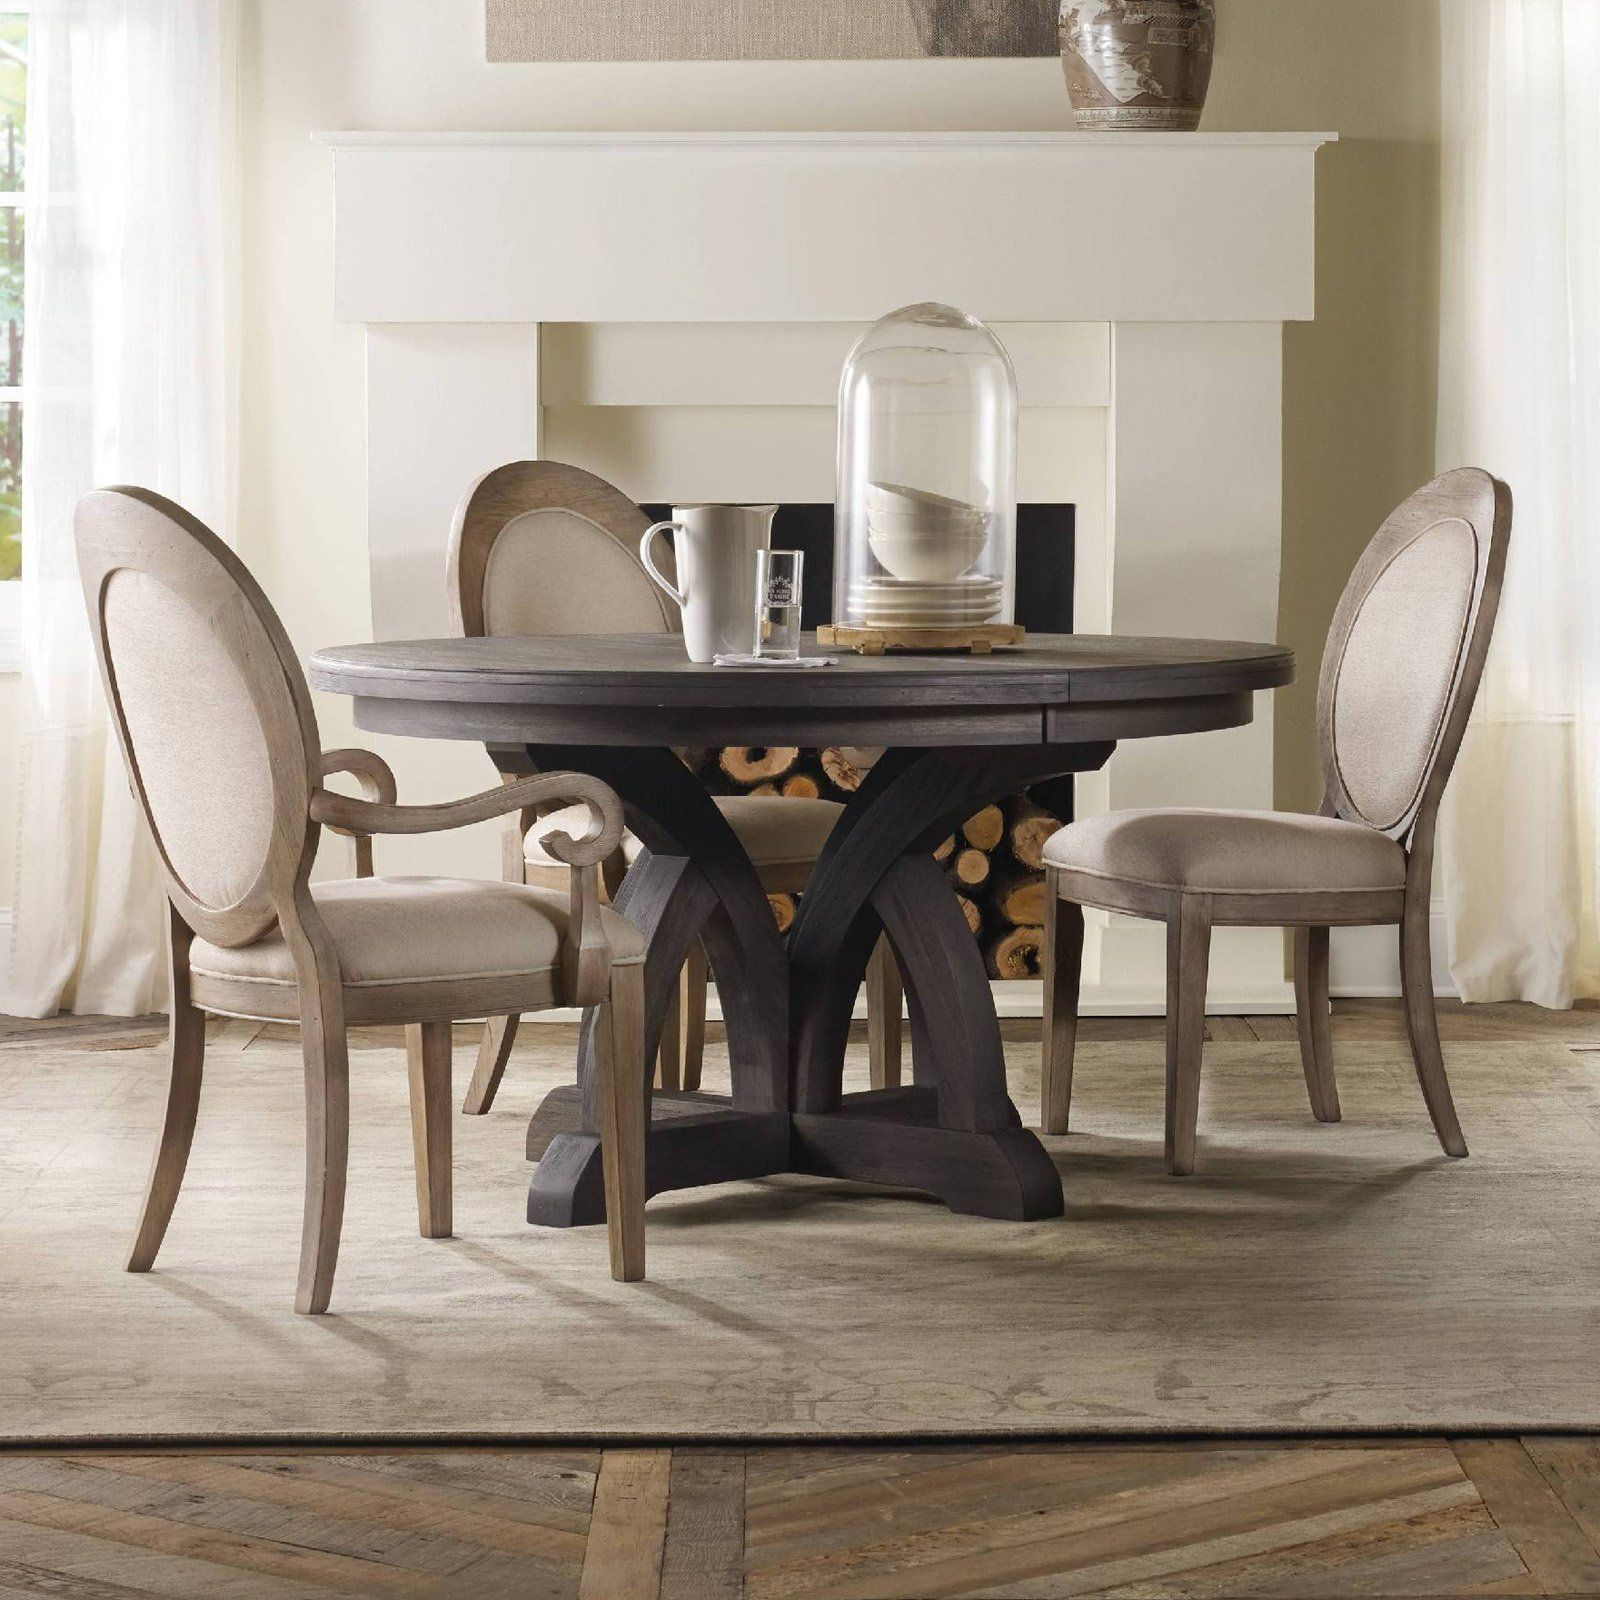 Hooker Furniture Corsica 5 Piece Round Dining Tables Set With Round Back Chairs Hook4411 Dining Room In 2019 Round Dining Table Sets Round Wood Dining T